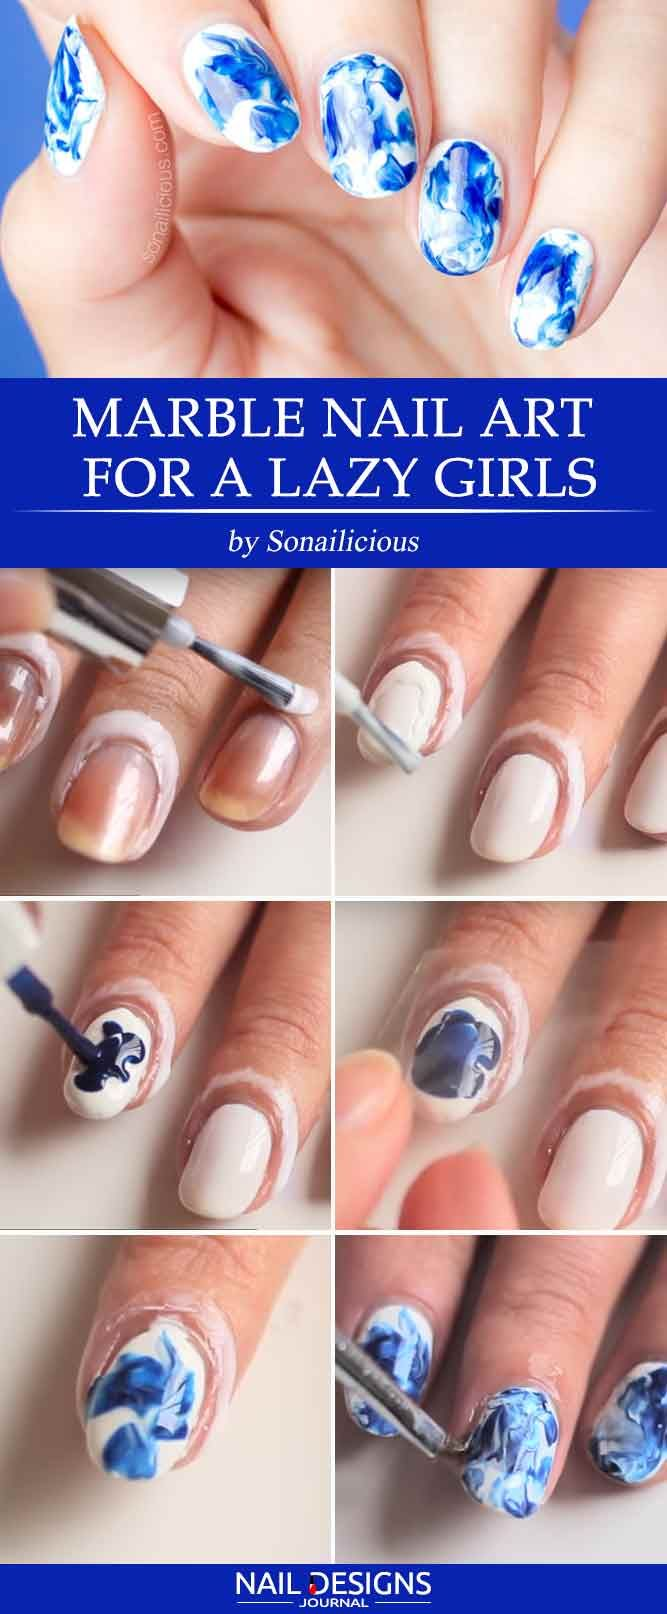 Marble Nails: Easy Way to Create Trendy Manicure | Marble art, Lazy ...